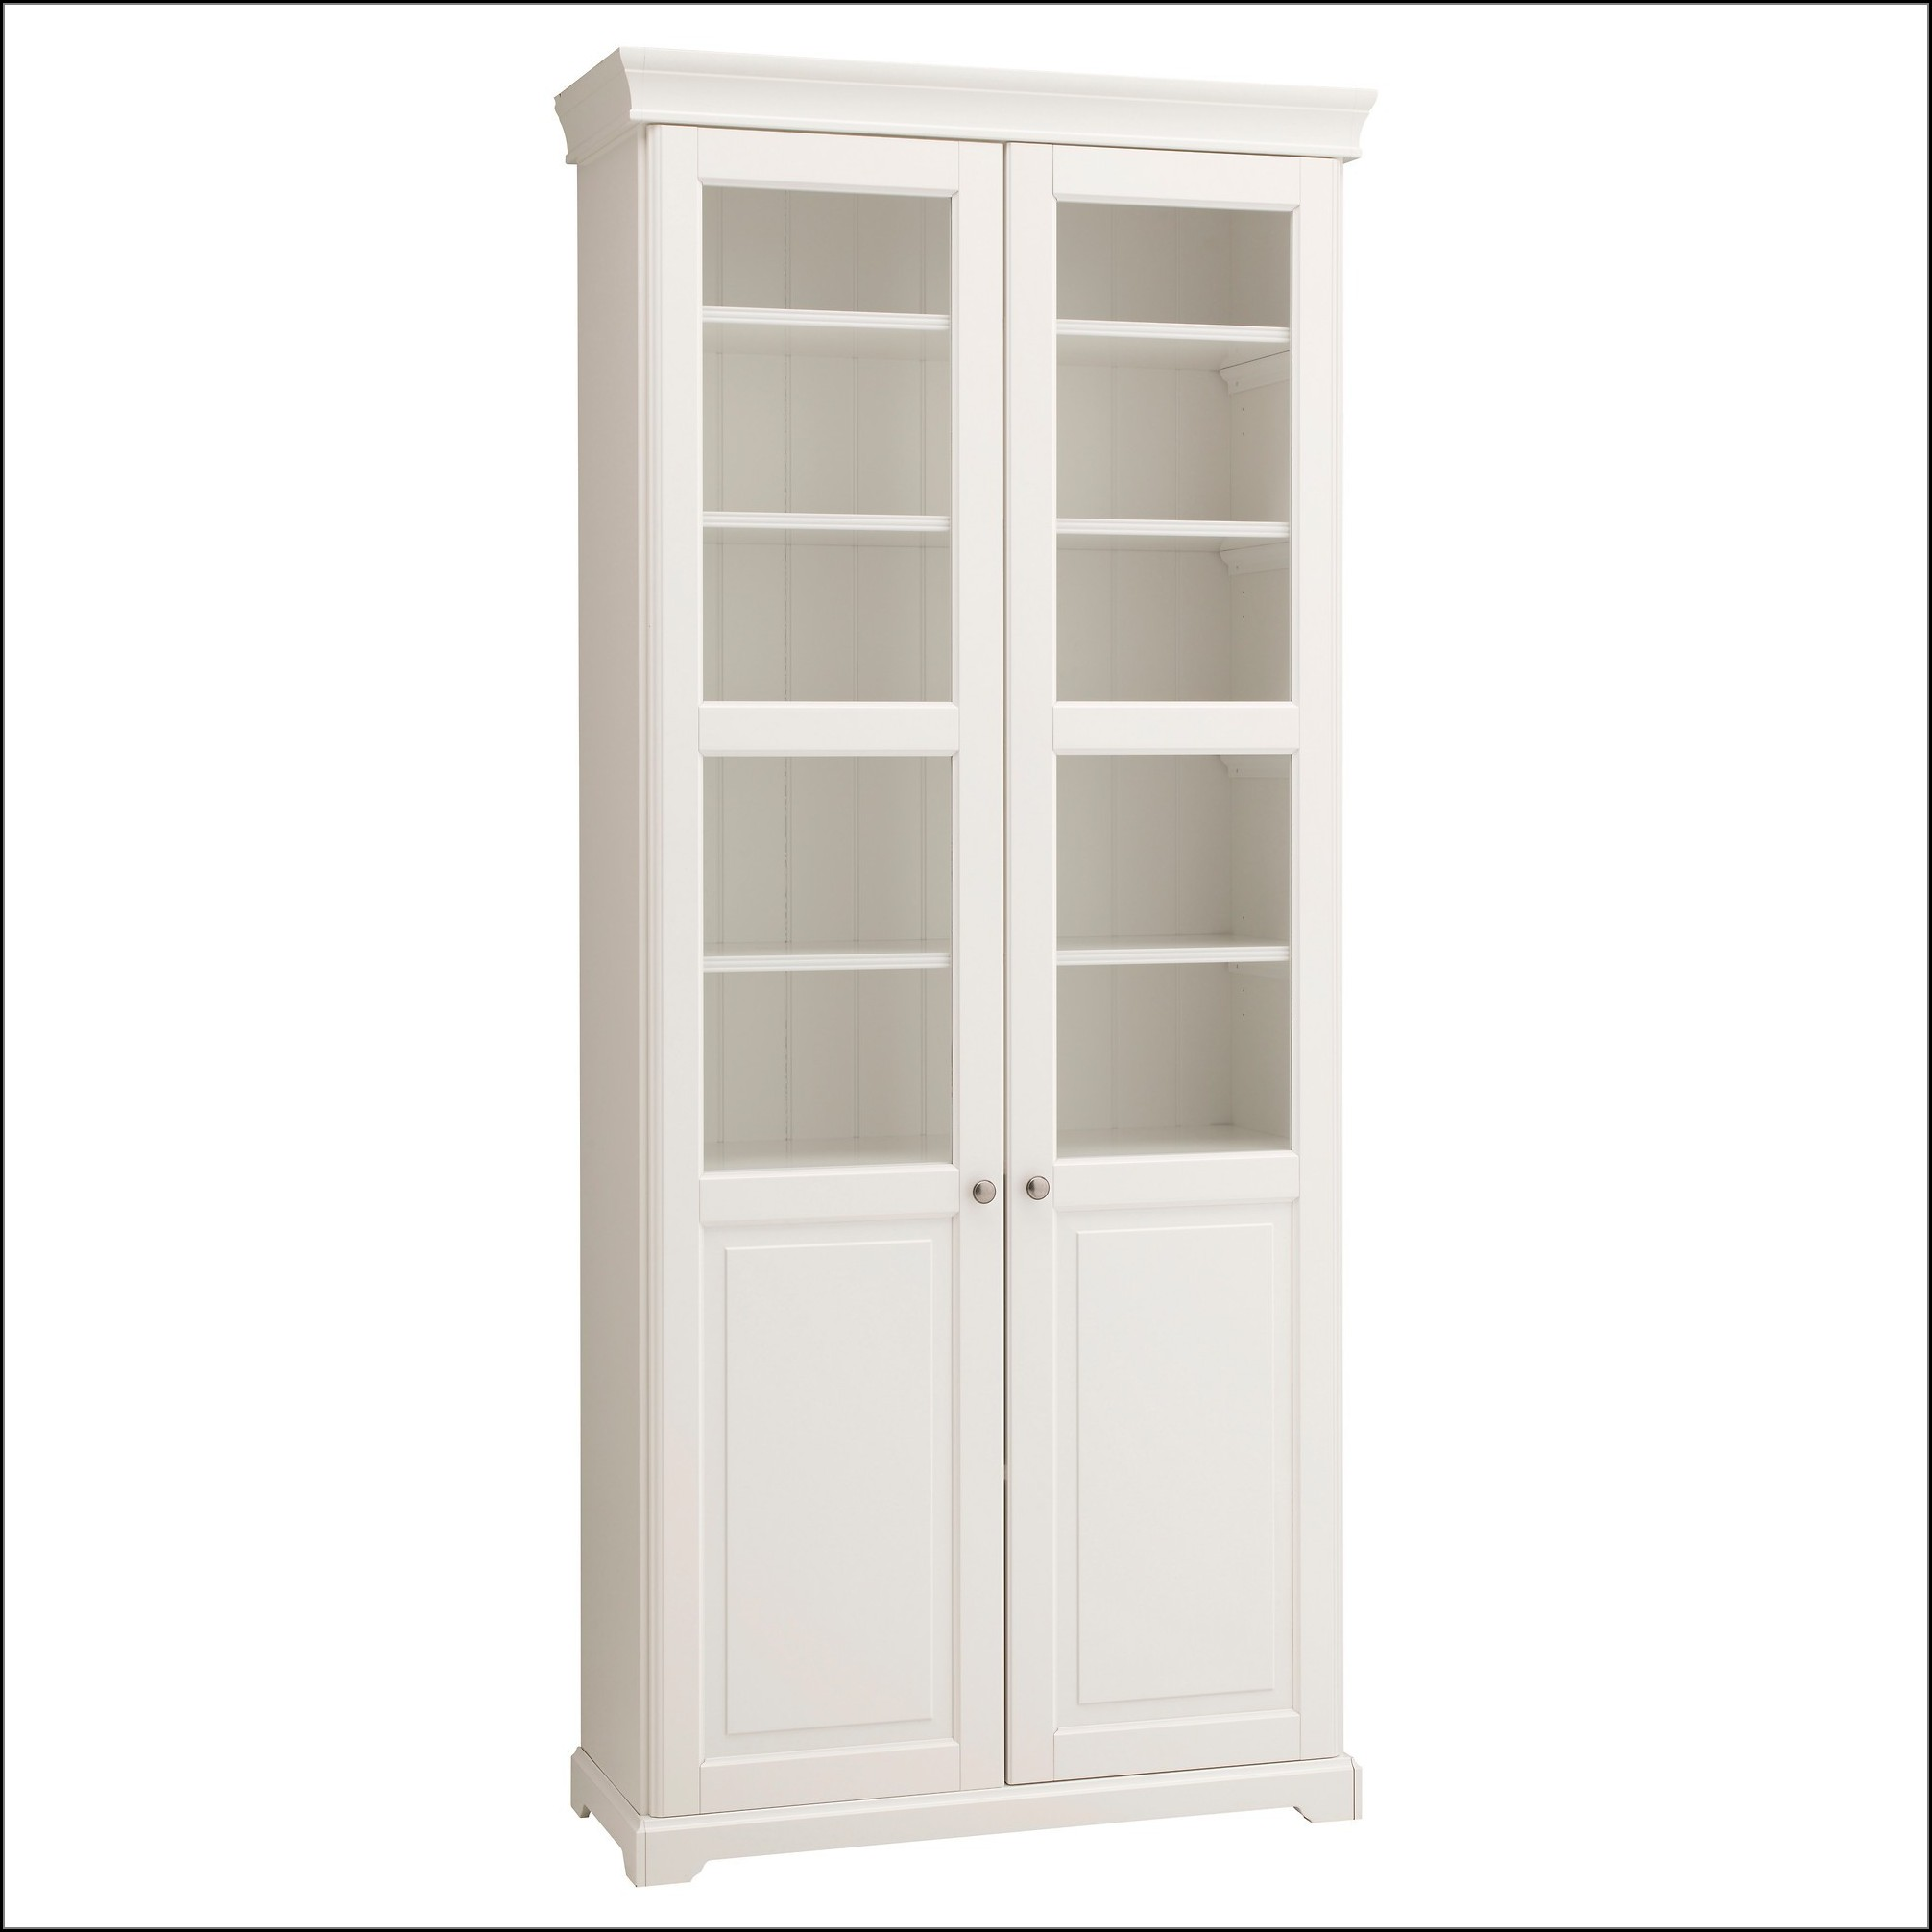 Tall White Cabinet With Glass Doors